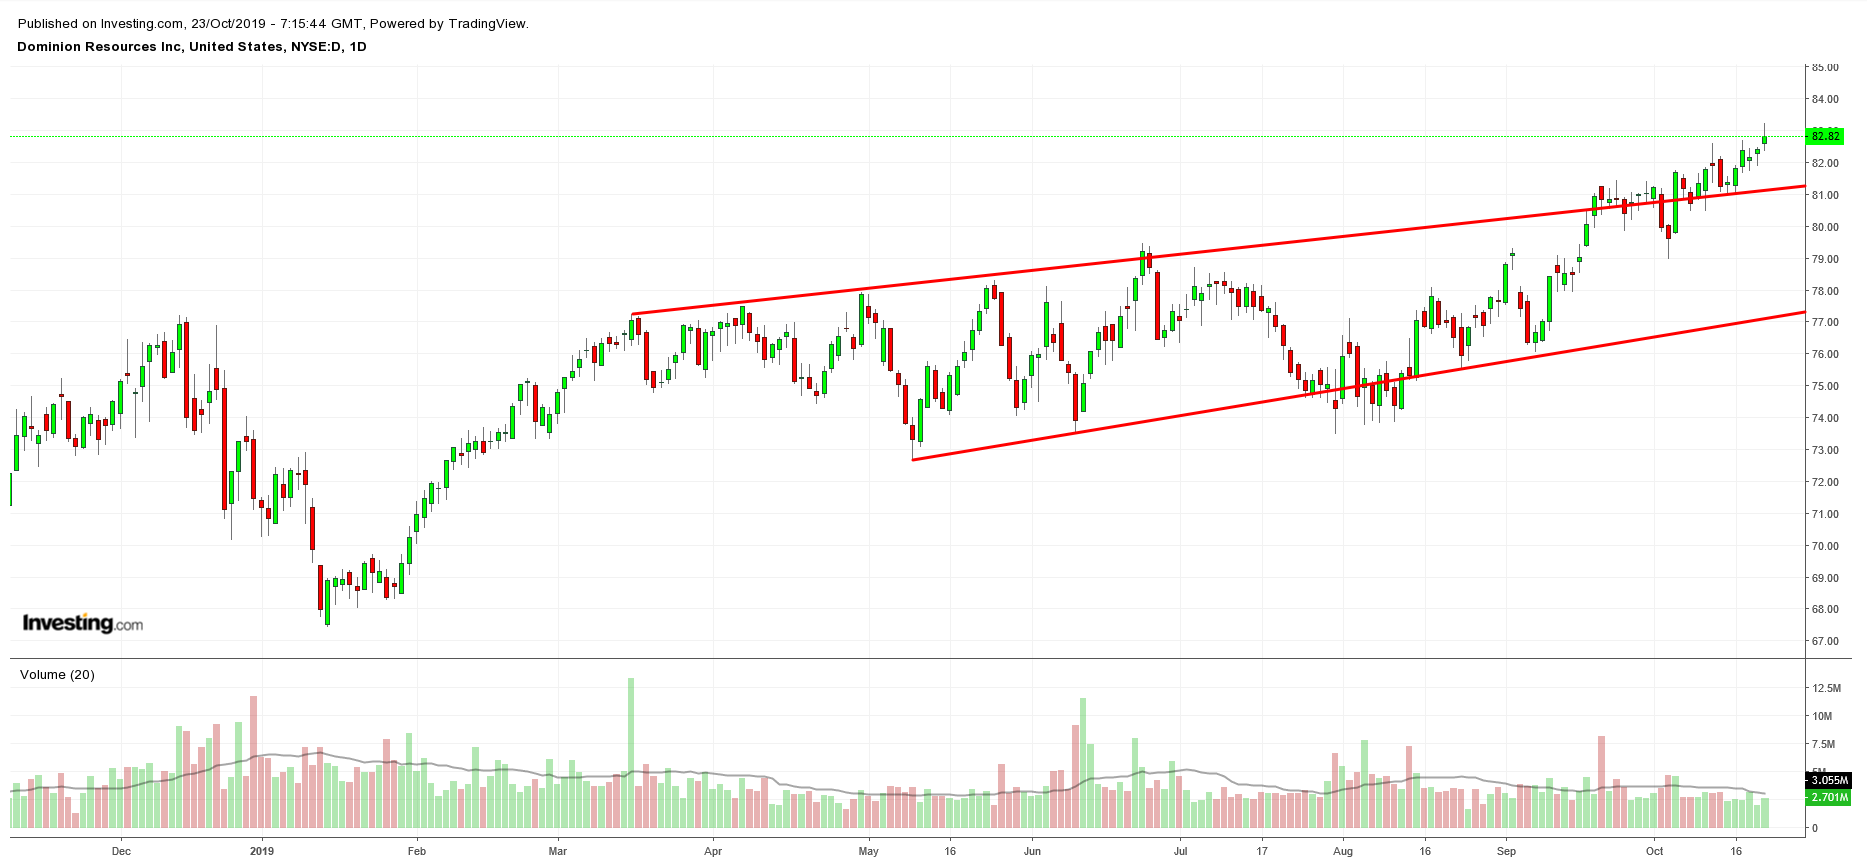 D Daily Chart